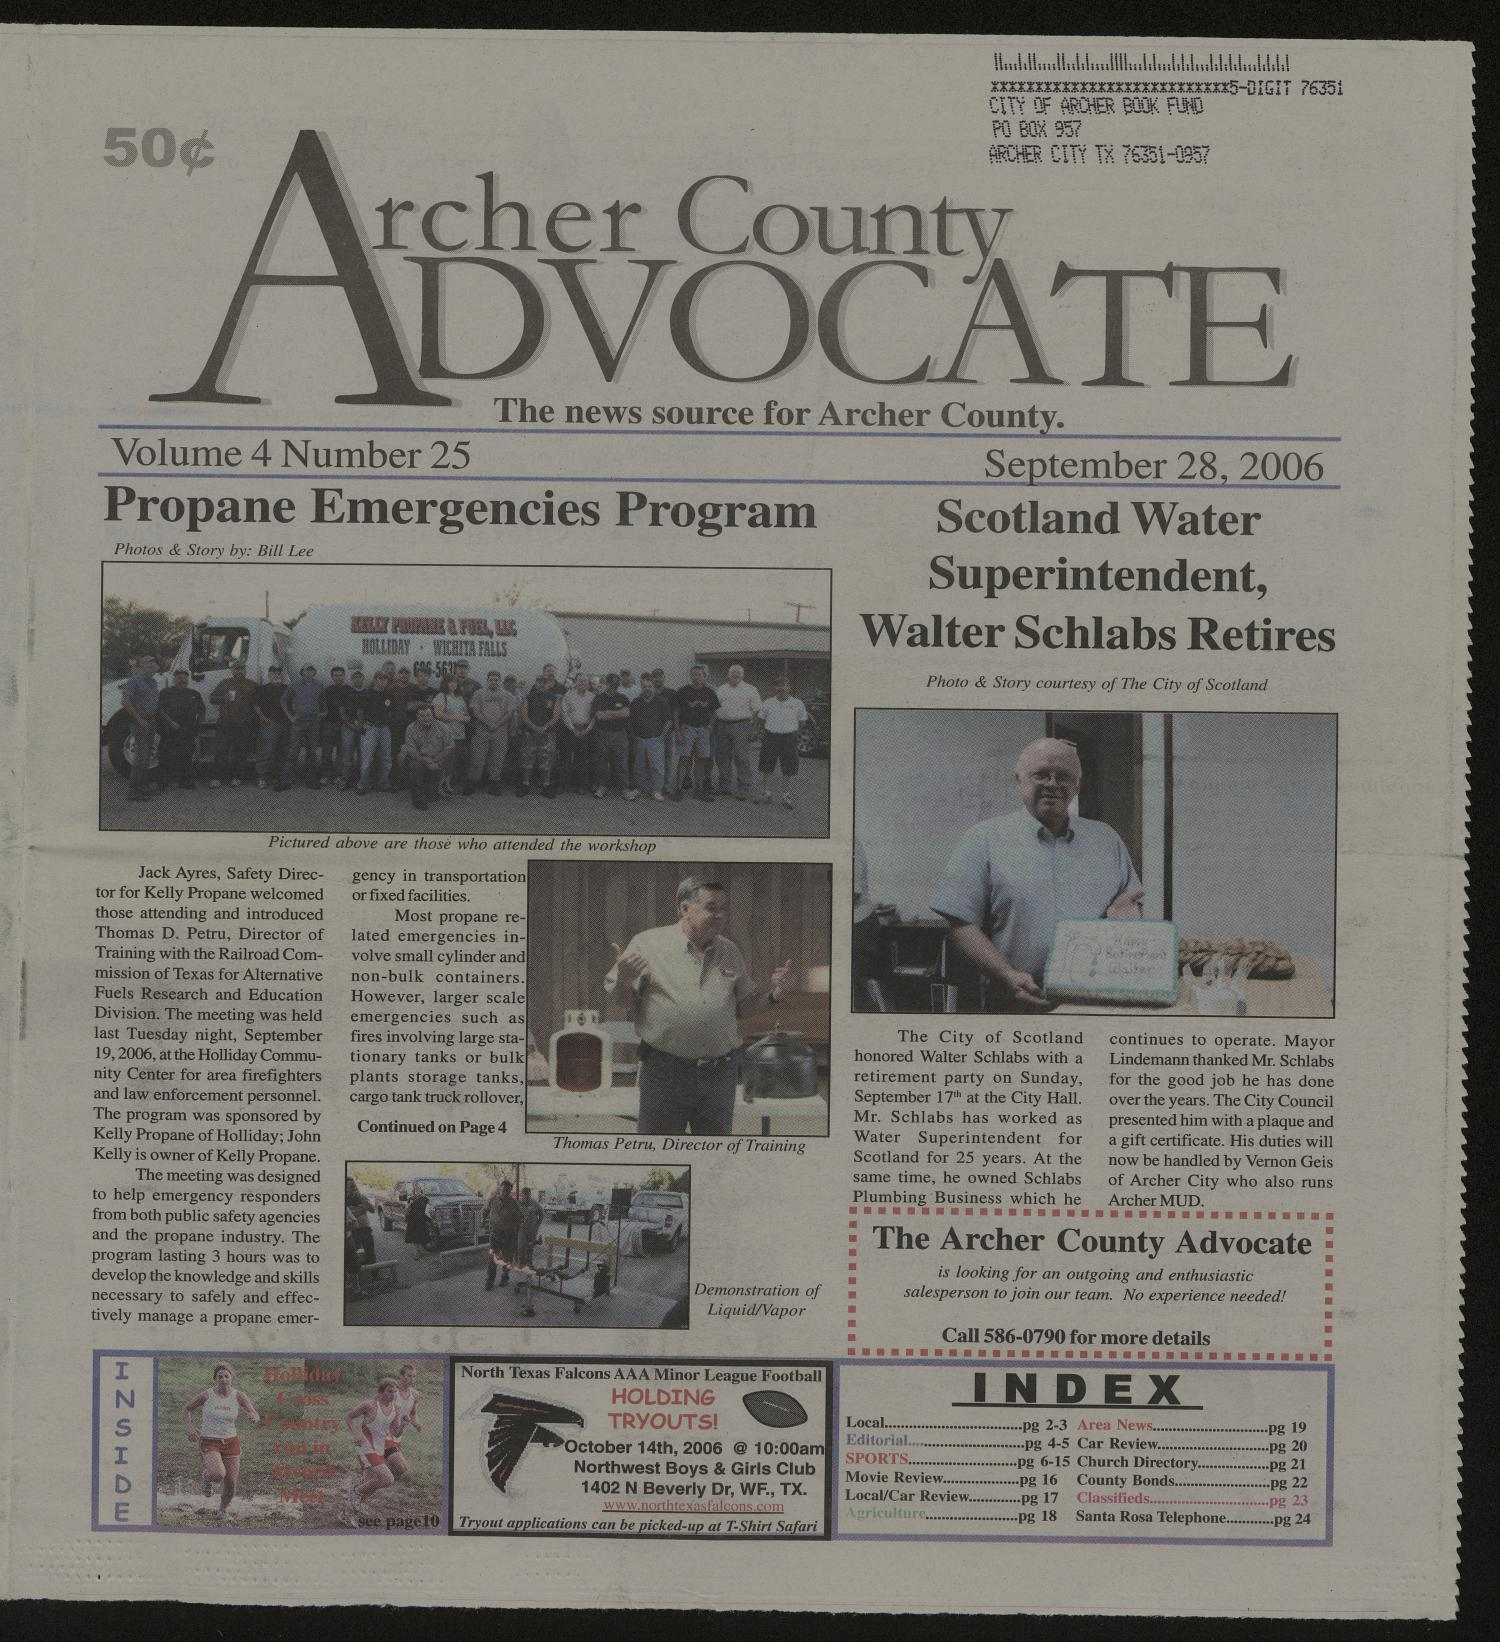 Texas archer county holliday 76366 - Archer County Advocate Holliday Tex Vol 4 No 25 Ed 1 Thursday September 28 2006 The Portal To Texas History